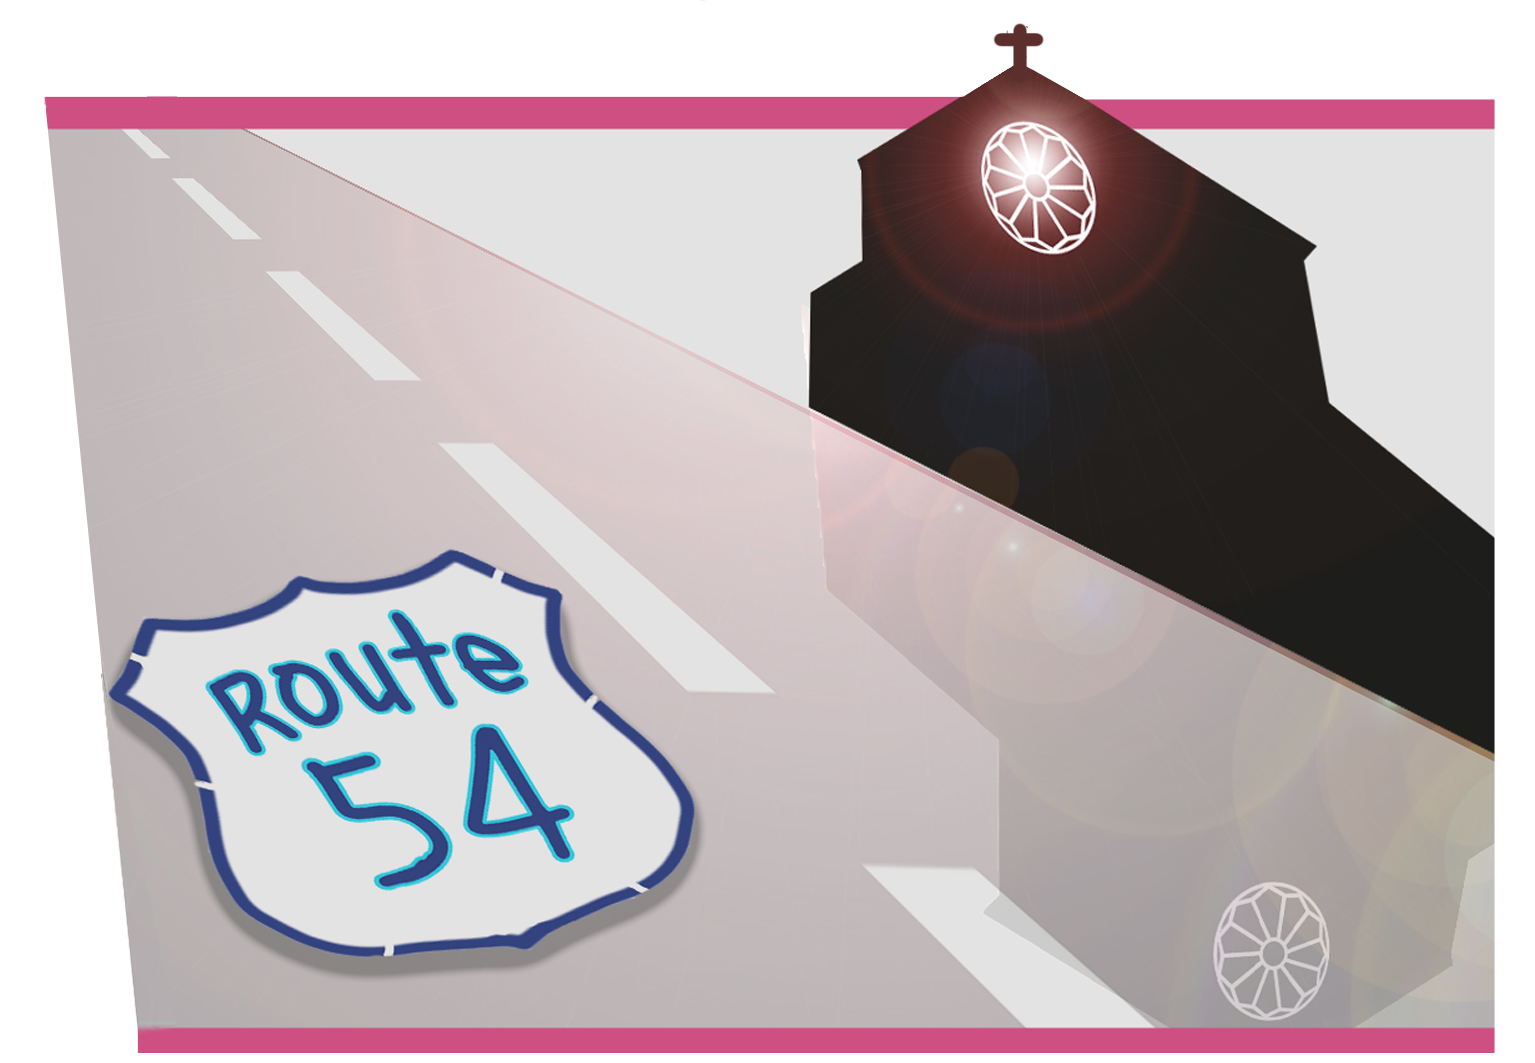 Route 54